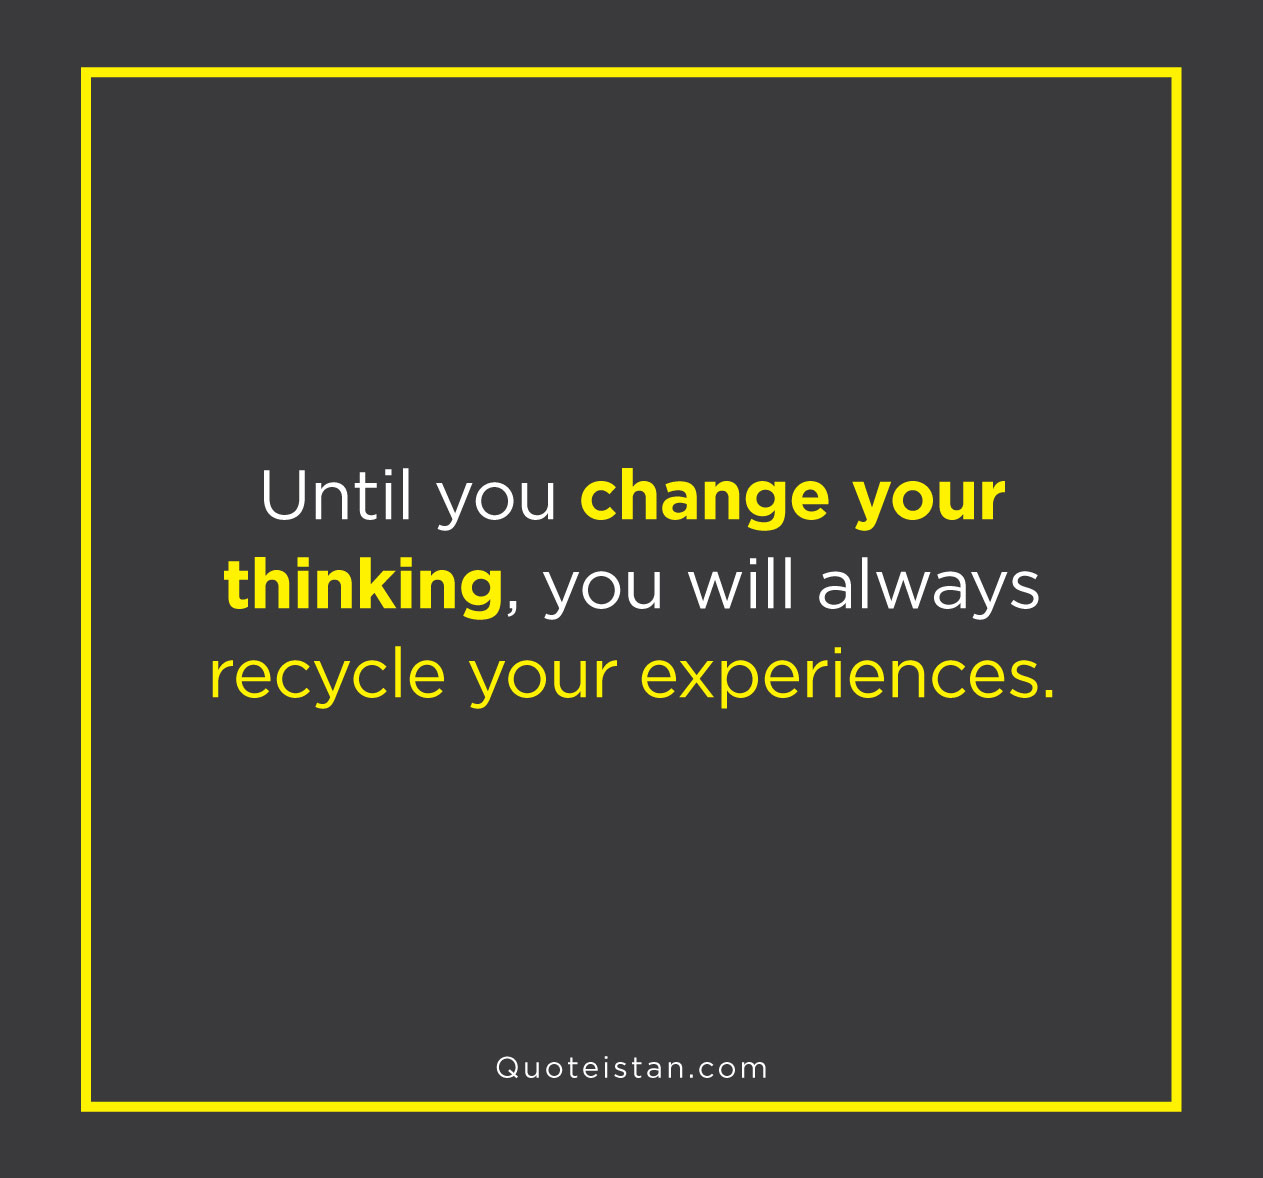 Until you change your thinking, you will always recycle your experiences.